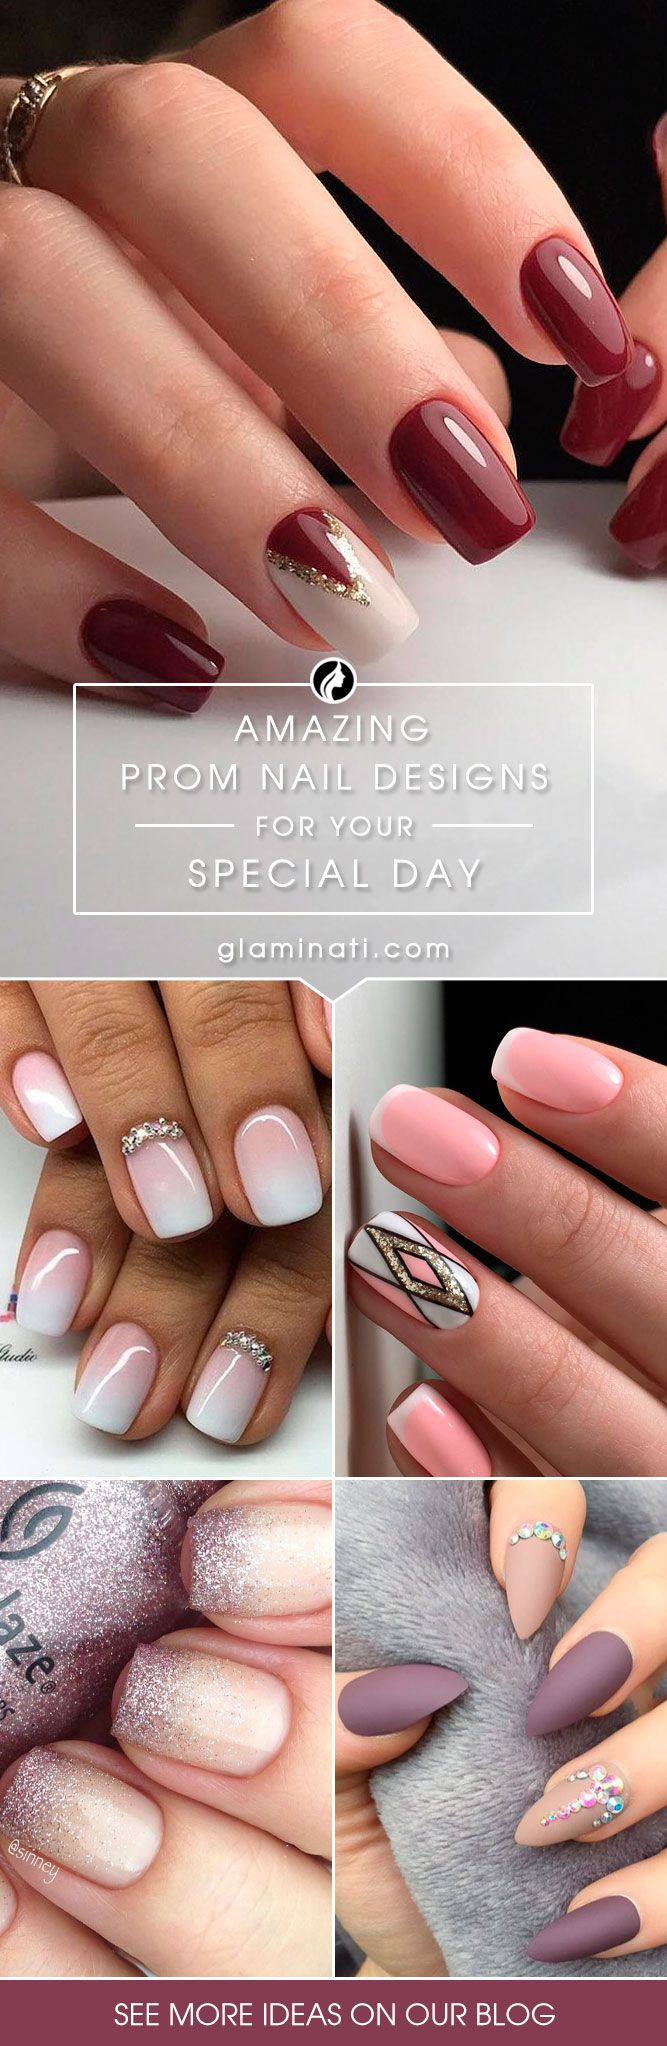 13 more elegant nail art designs for prom 2017: #12. classy